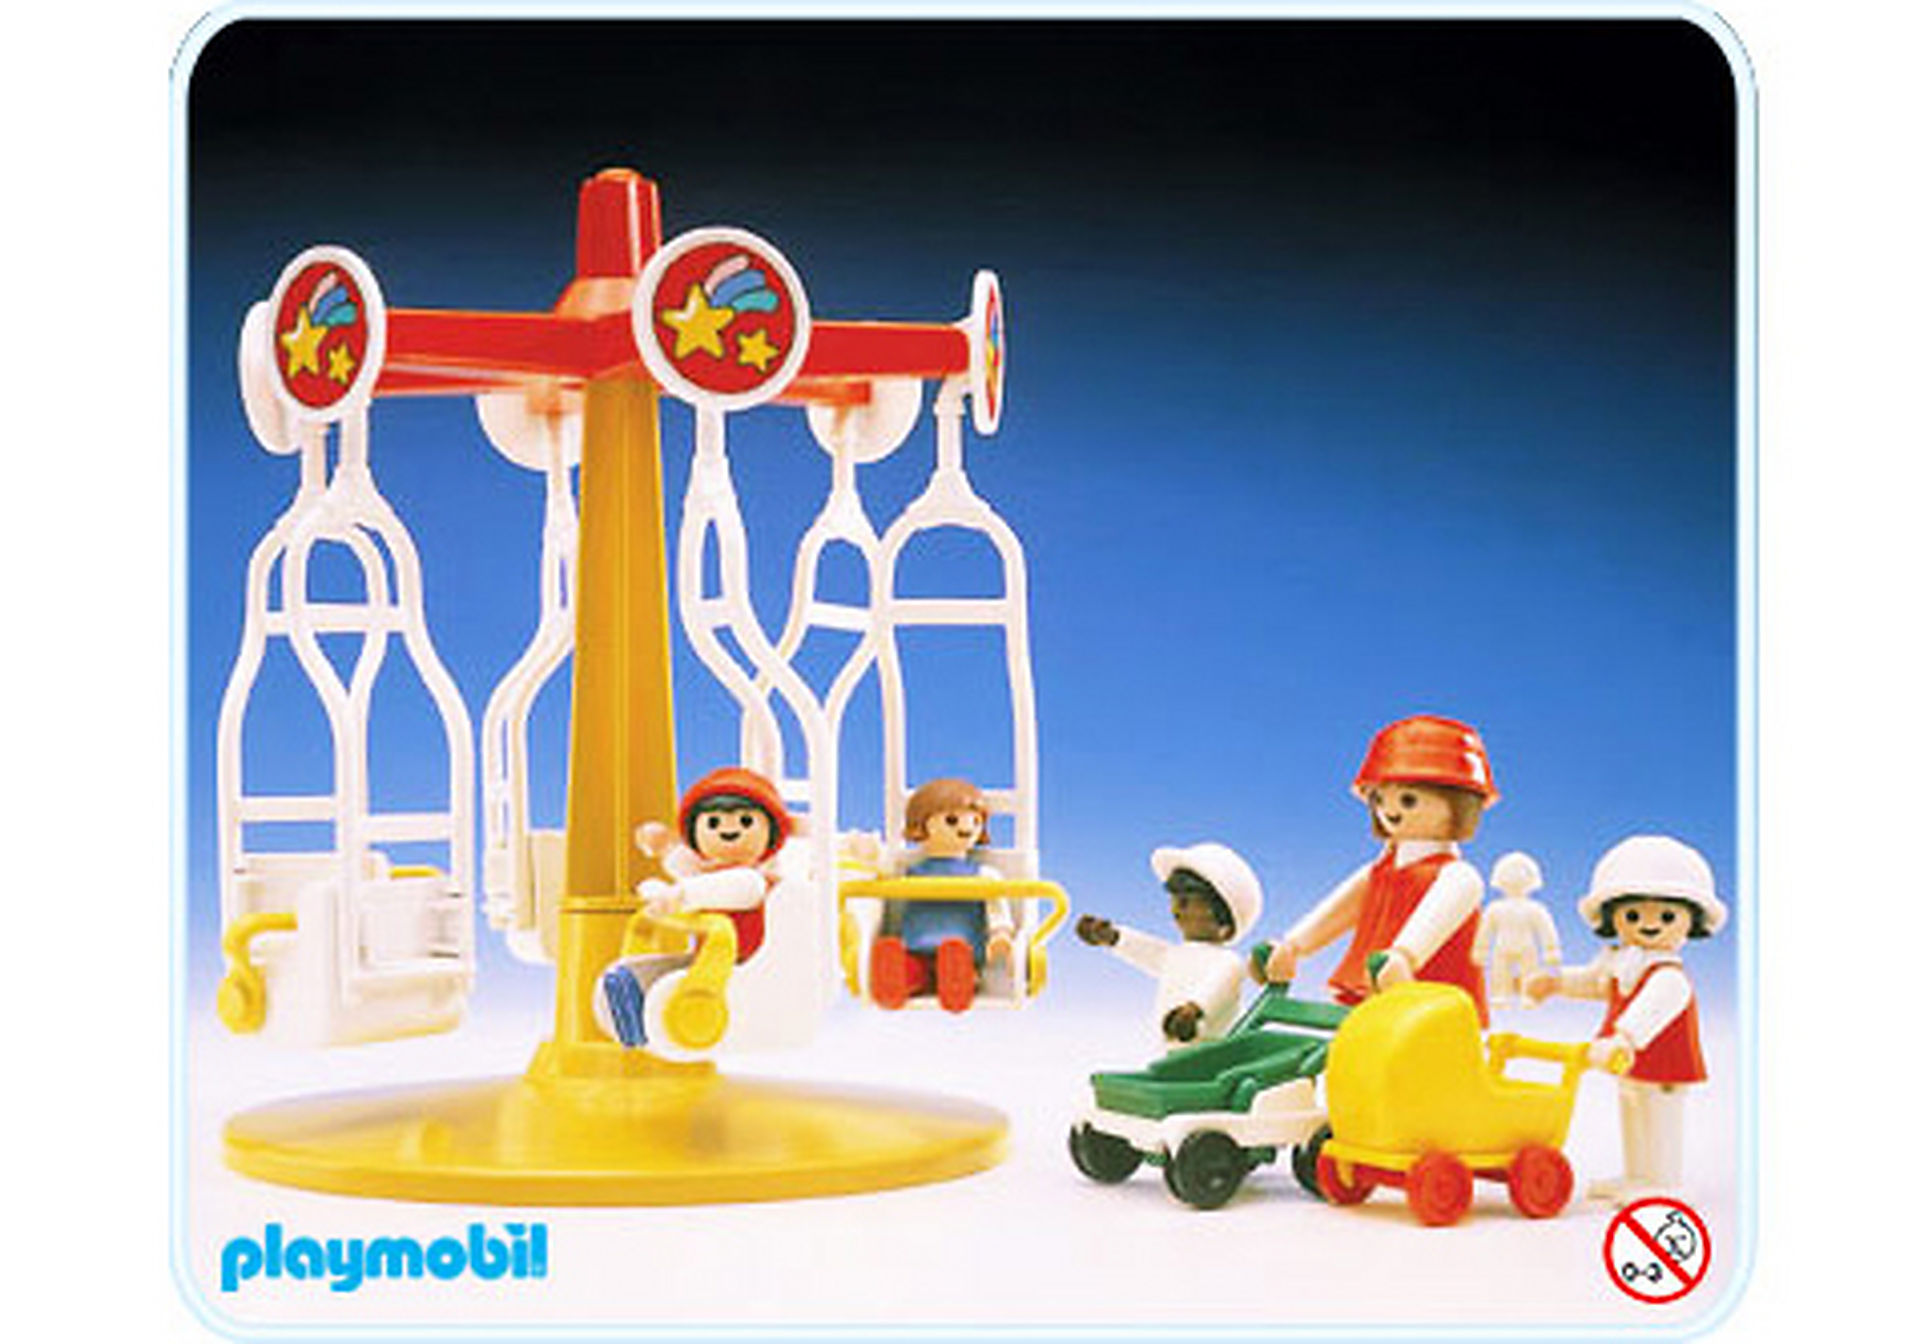 http://media.playmobil.com/i/playmobil/3195-A_product_detail/Carrousel